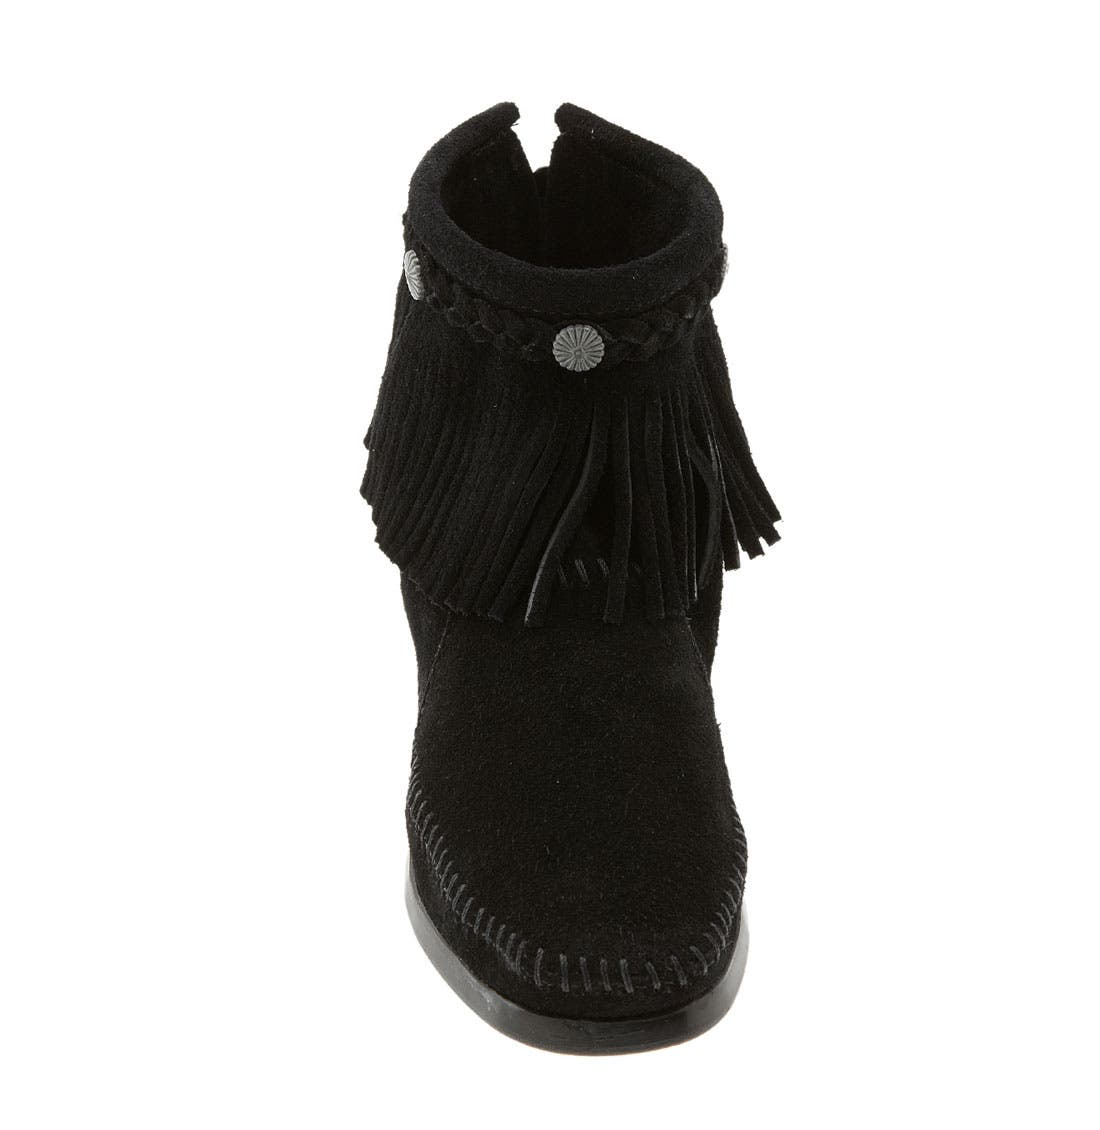 MINNETONKA, Fringed Moccasin Bootie, Alternate thumbnail 3, color, BLACK